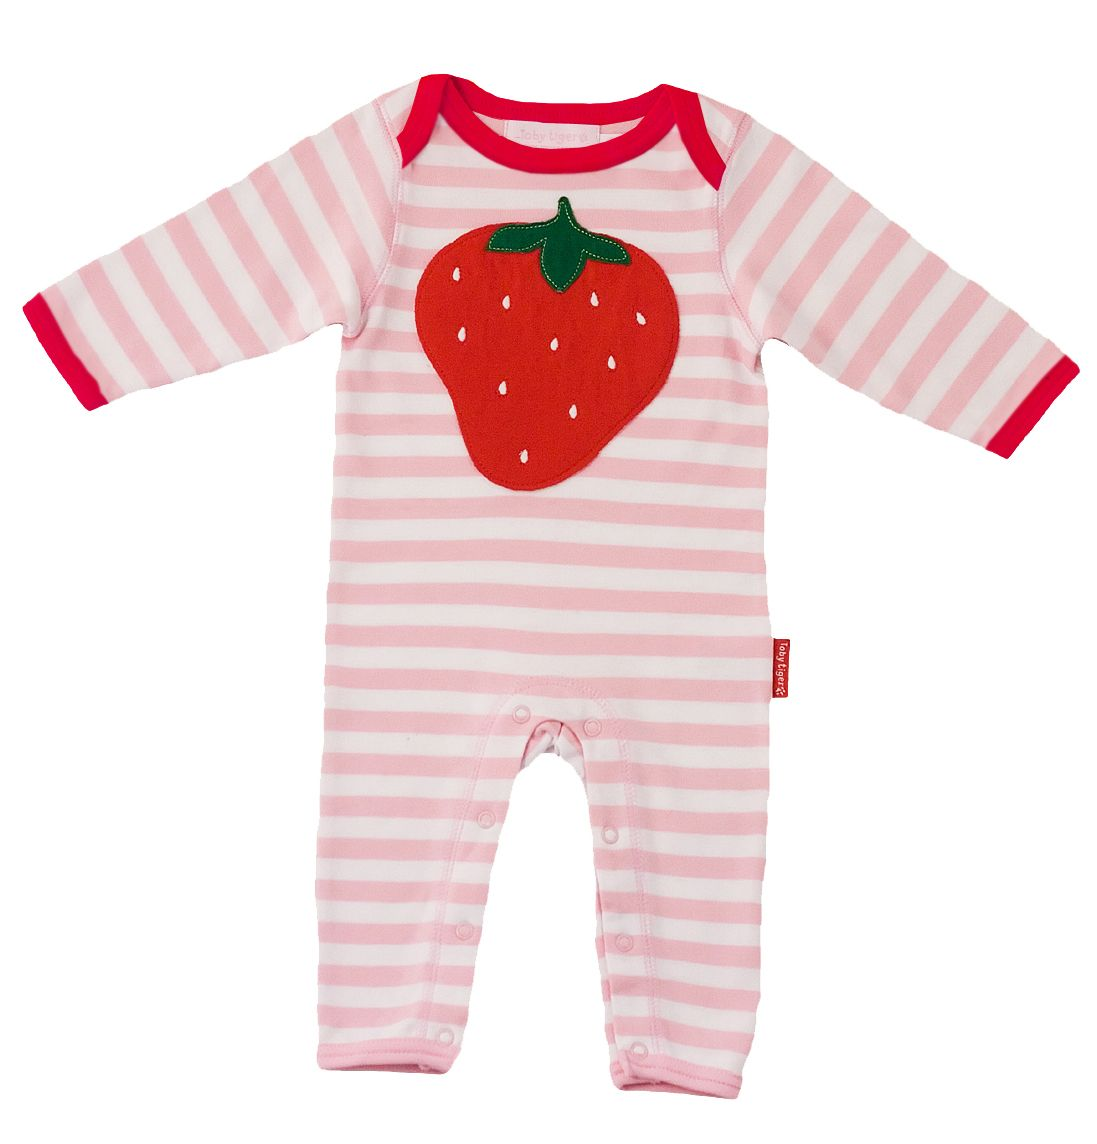 Toby Tiger Baby organic cotton sleepsuit, Pink